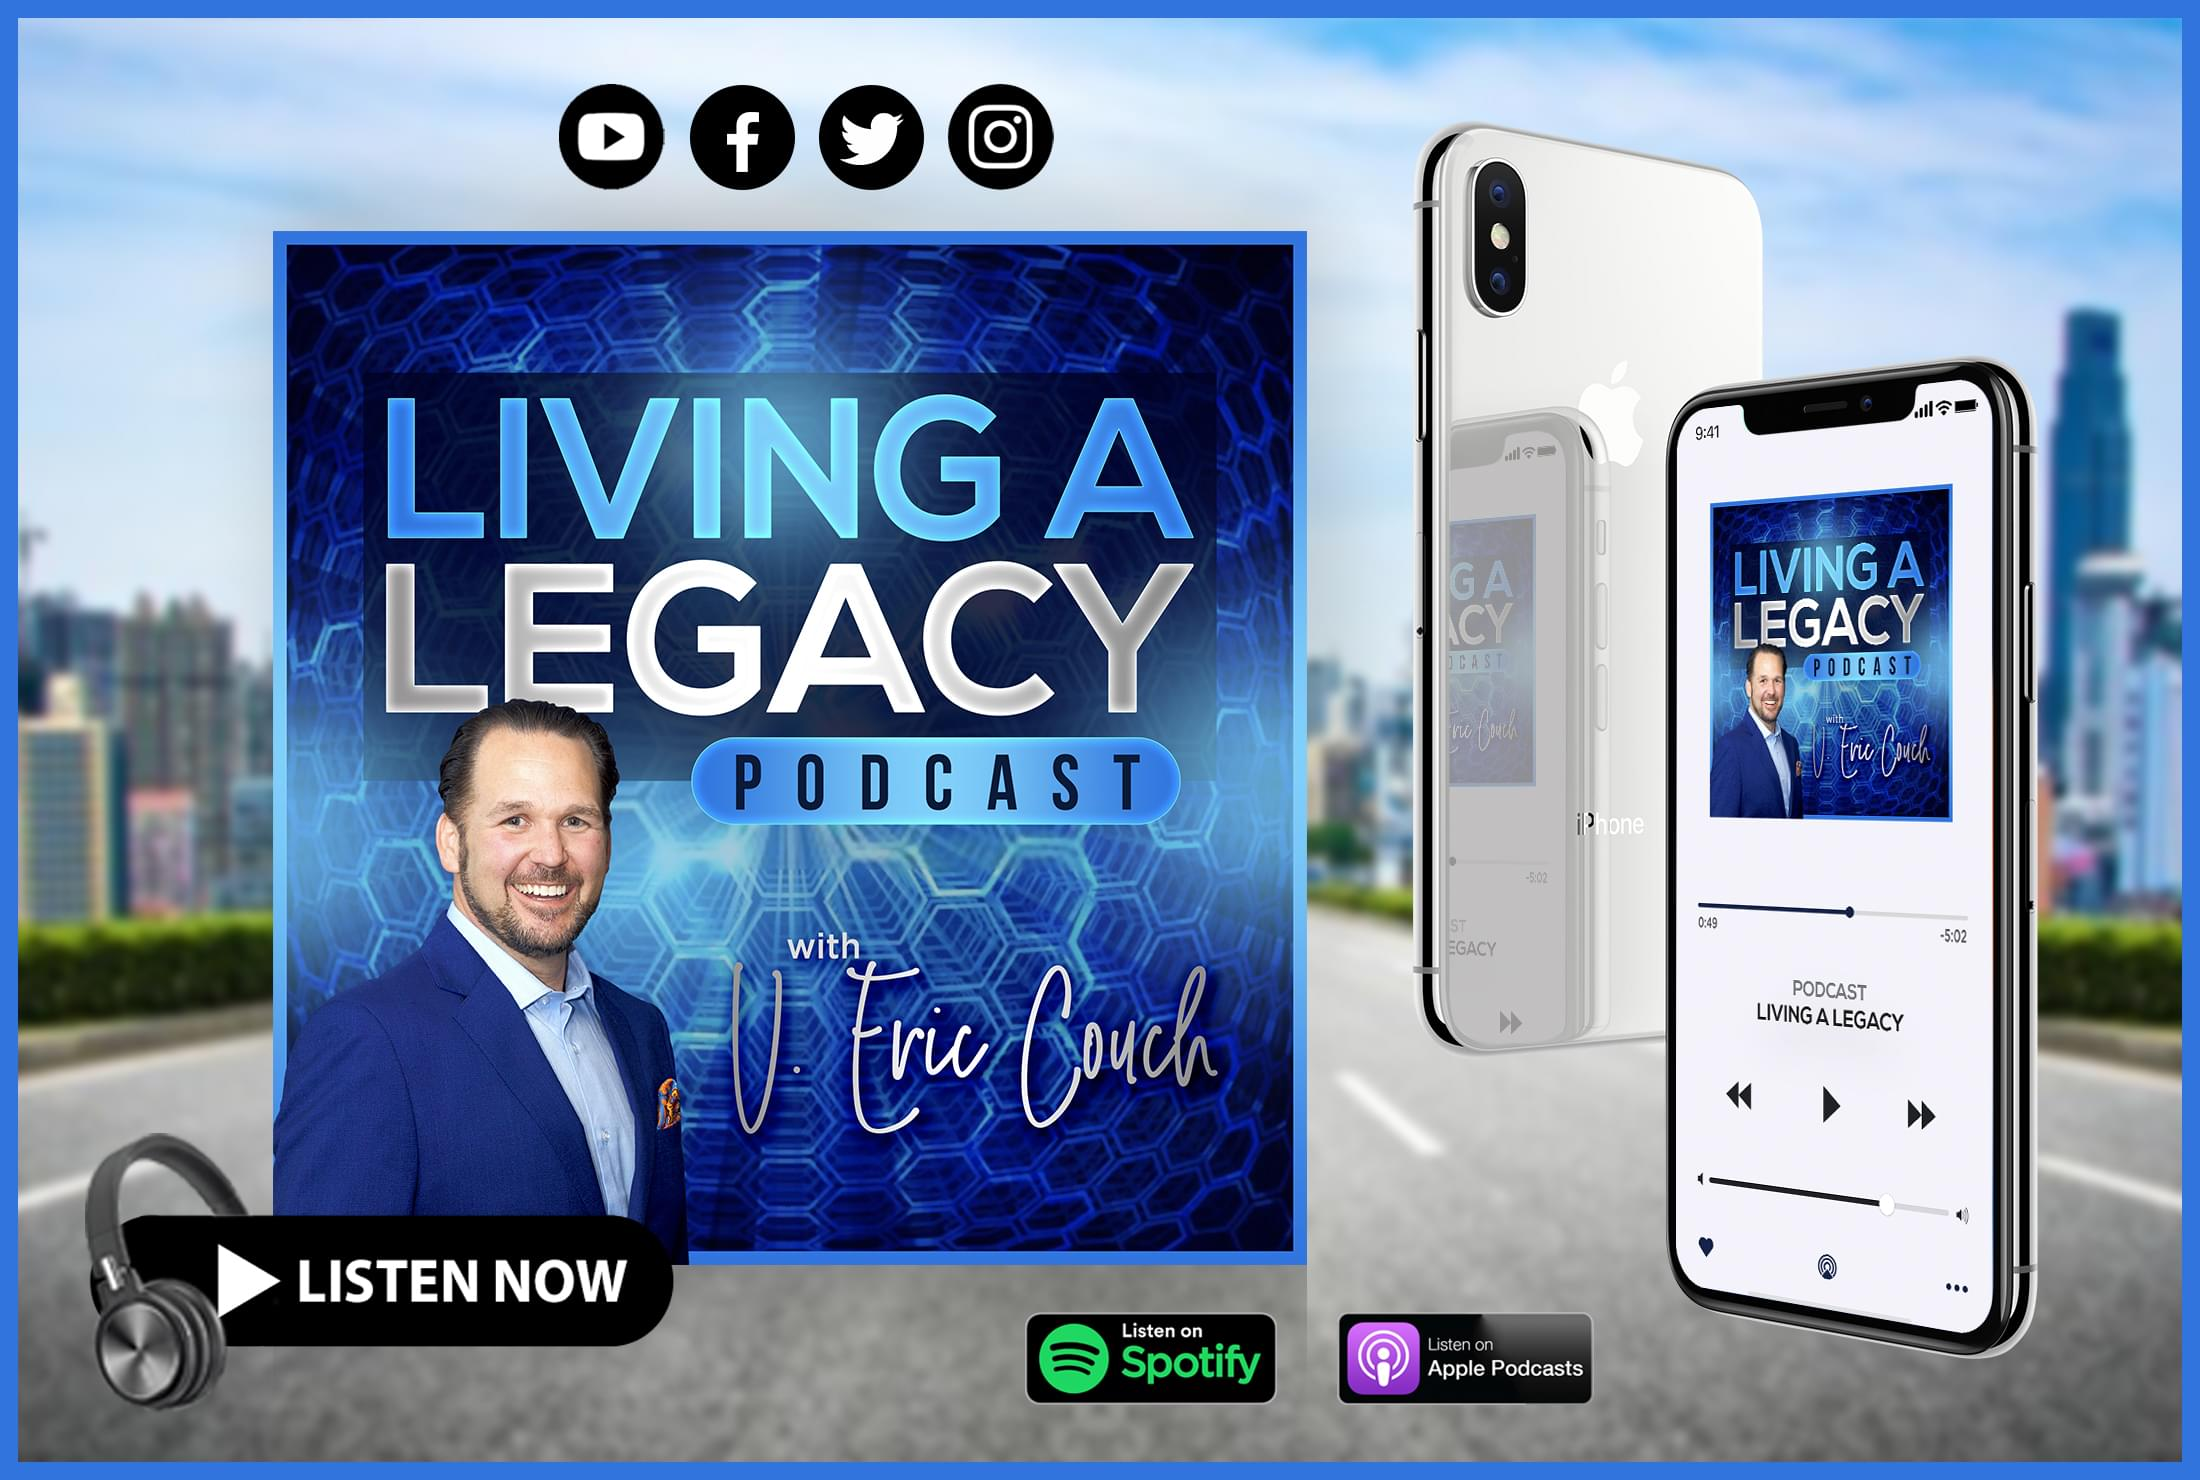 Eric Couch (Living a Legacy)